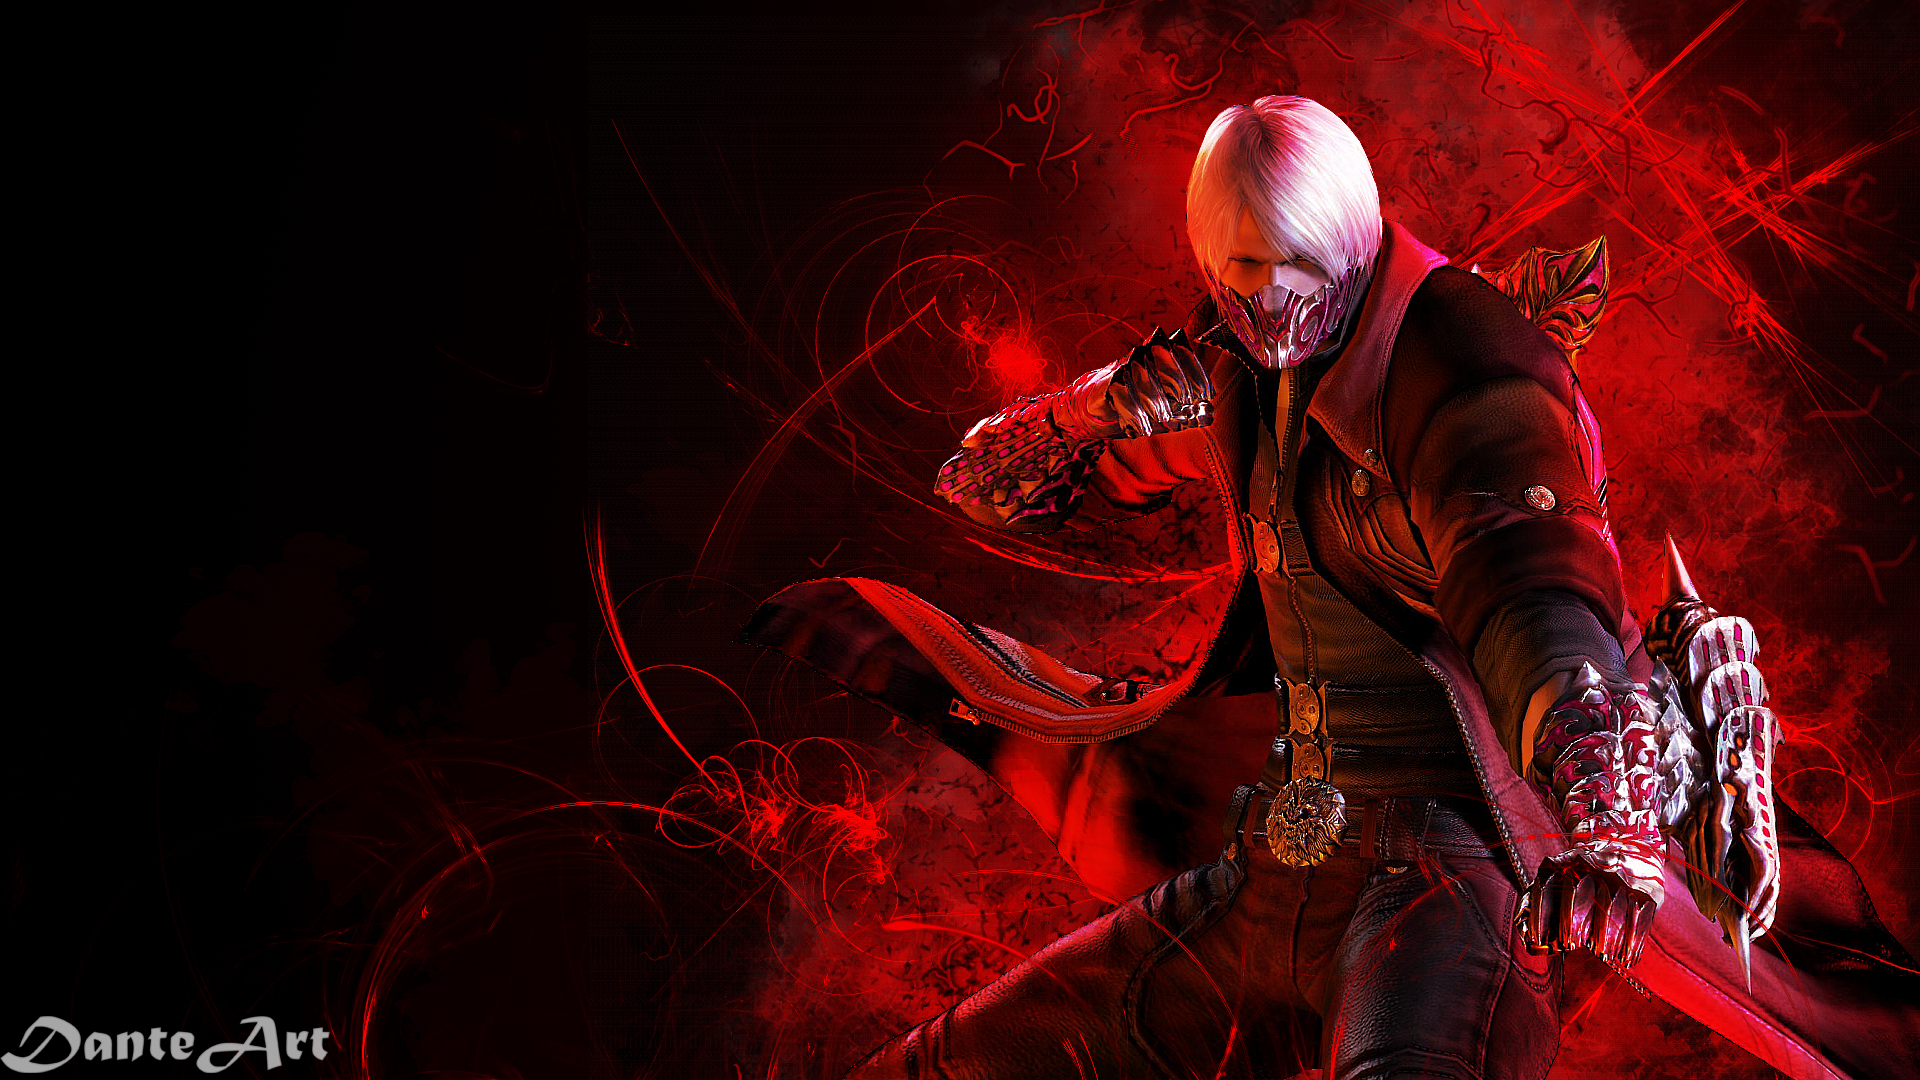 devil may cry 4 dante wallpaperdanteartwallpapers on deviantart